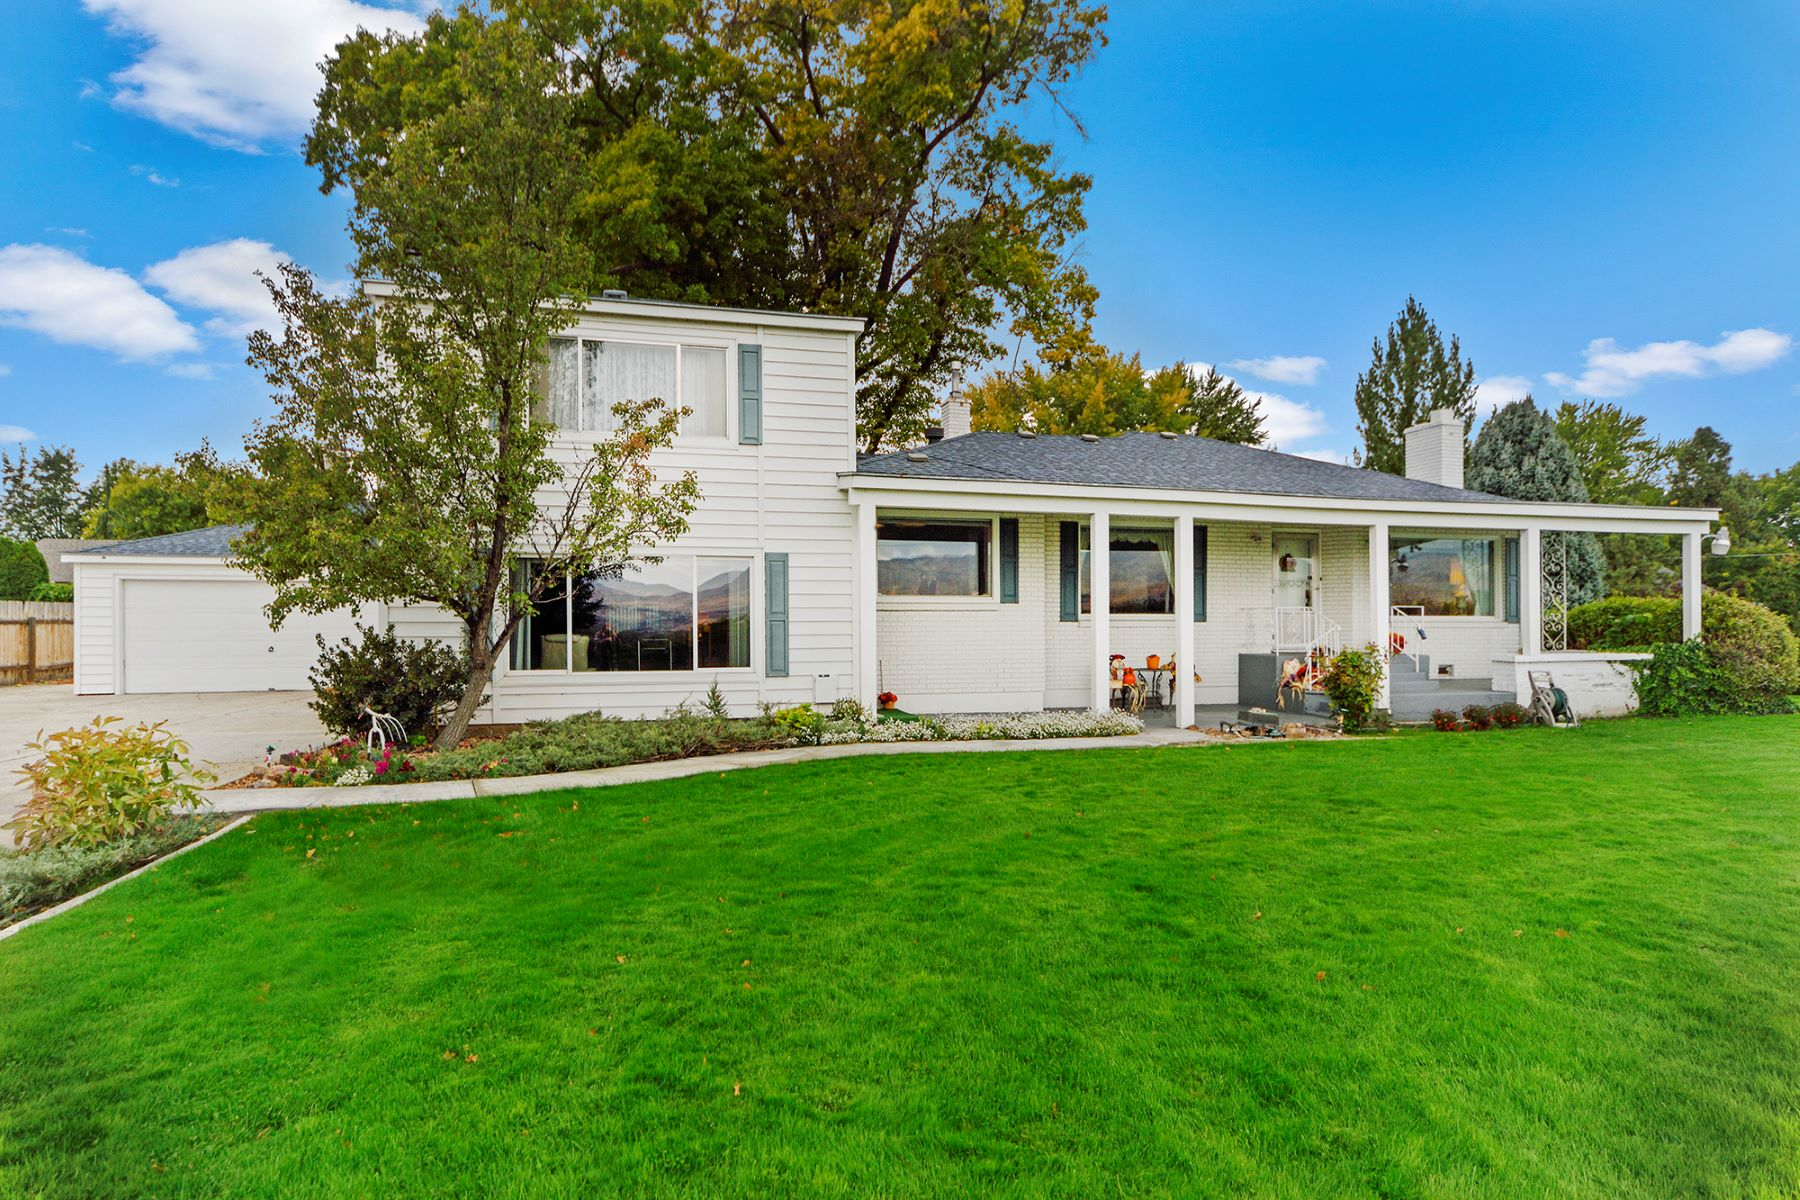 Single Family Homes for Sale at 3009 Mountain View Dr, Boise 3009 Mountain View Dr Boise, Idaho 83704 United States